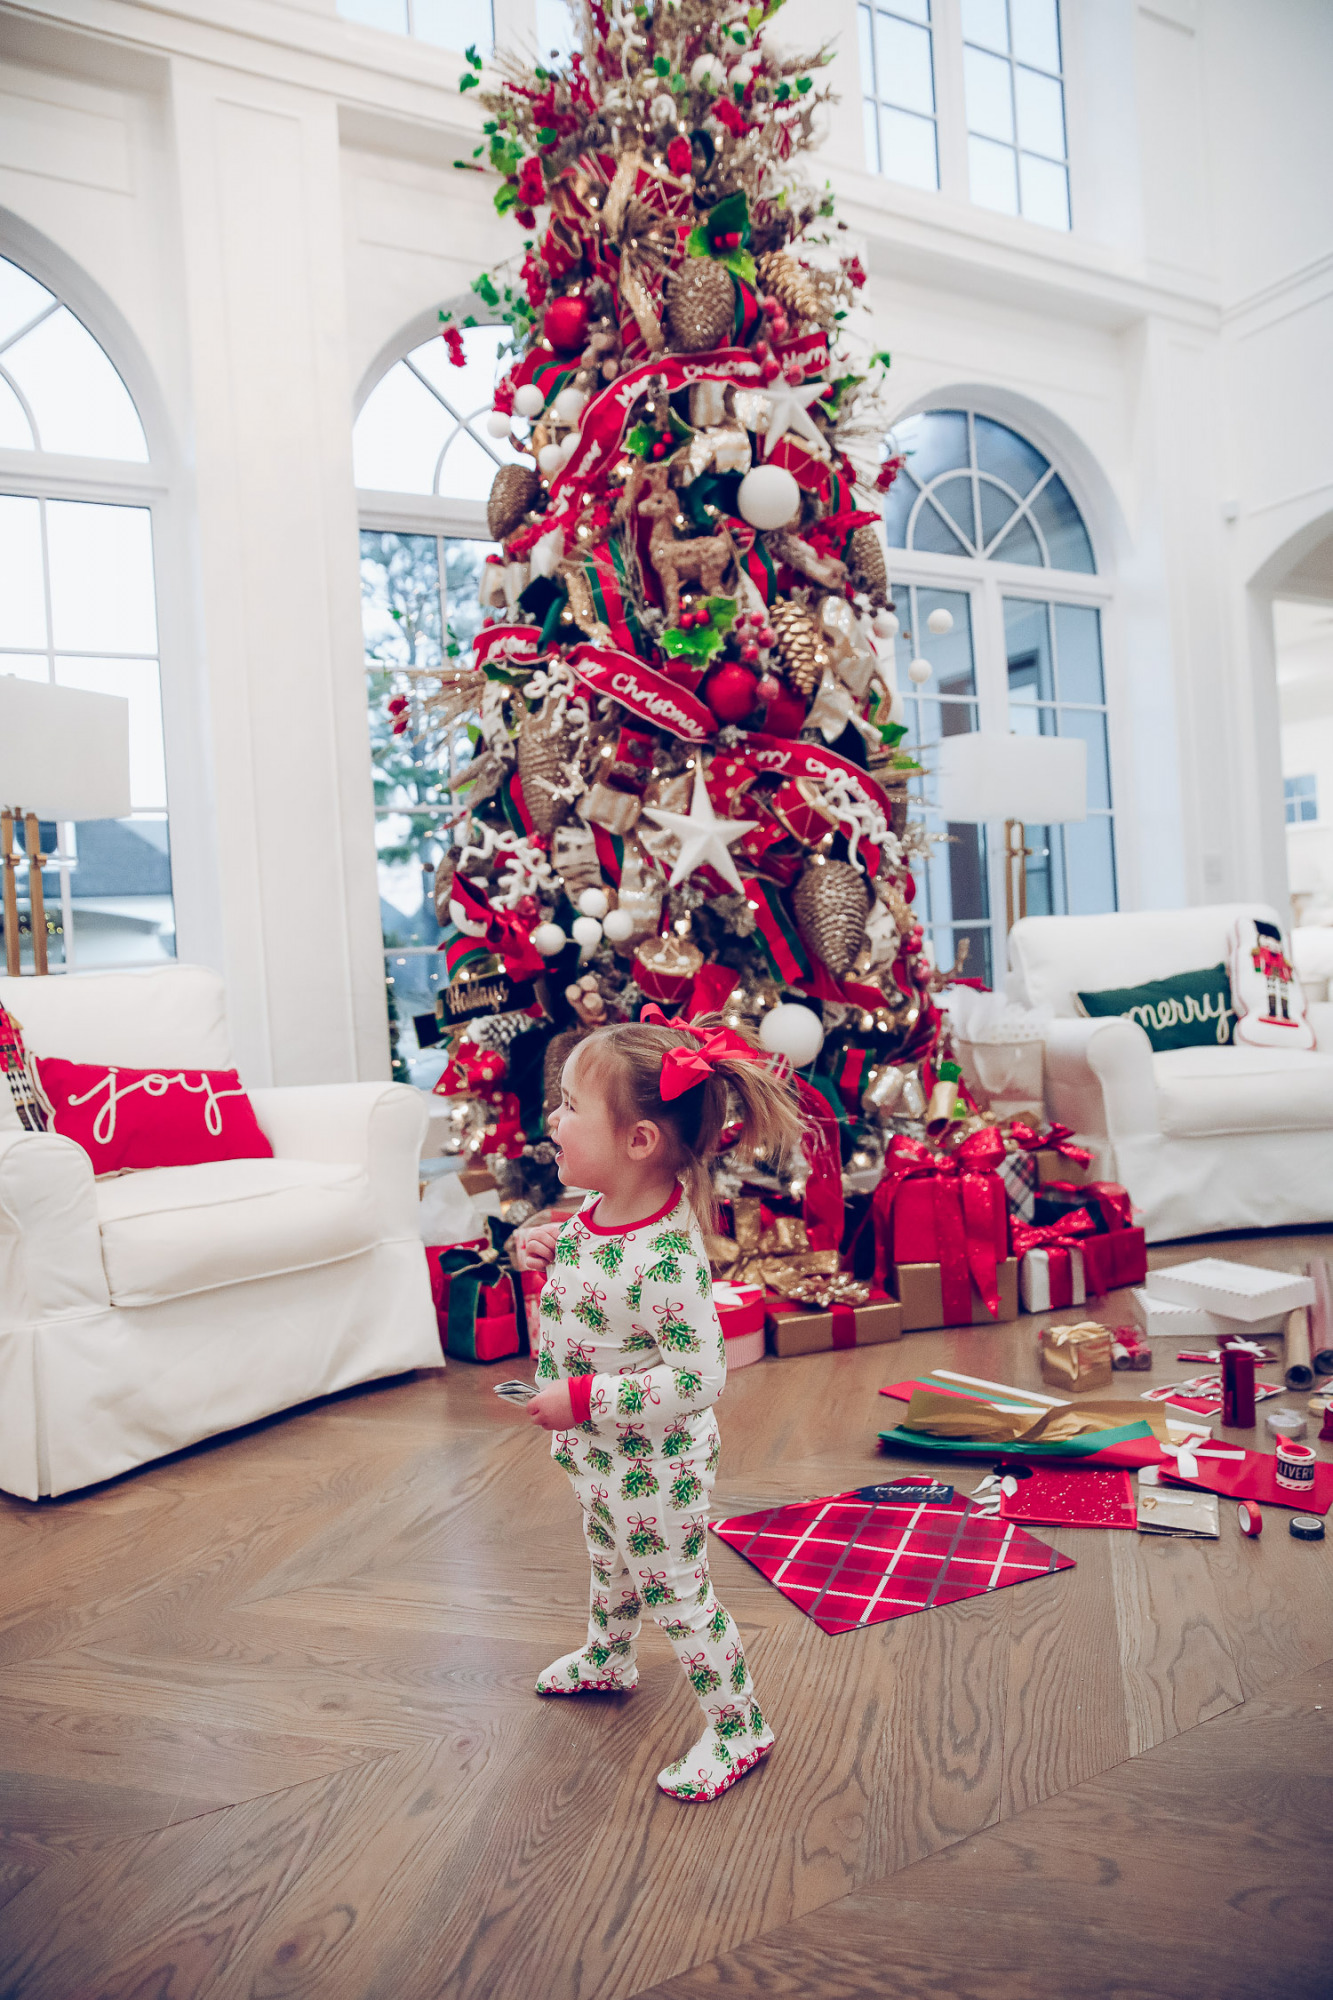 walmart gift wrap christmas 2020, shop hello holidays christmas tree, magnetic me PJs, emily ann gemma-10 | Gift Wrapping Ideas by popular US life and style blog, The Sweetest Thing: image of a little girl wearing Magnetic Me Christmas pjs while standing next to Christmas wrapping paper spread all over the floor in front of a Christmas tree with red, green and gold ornaments.